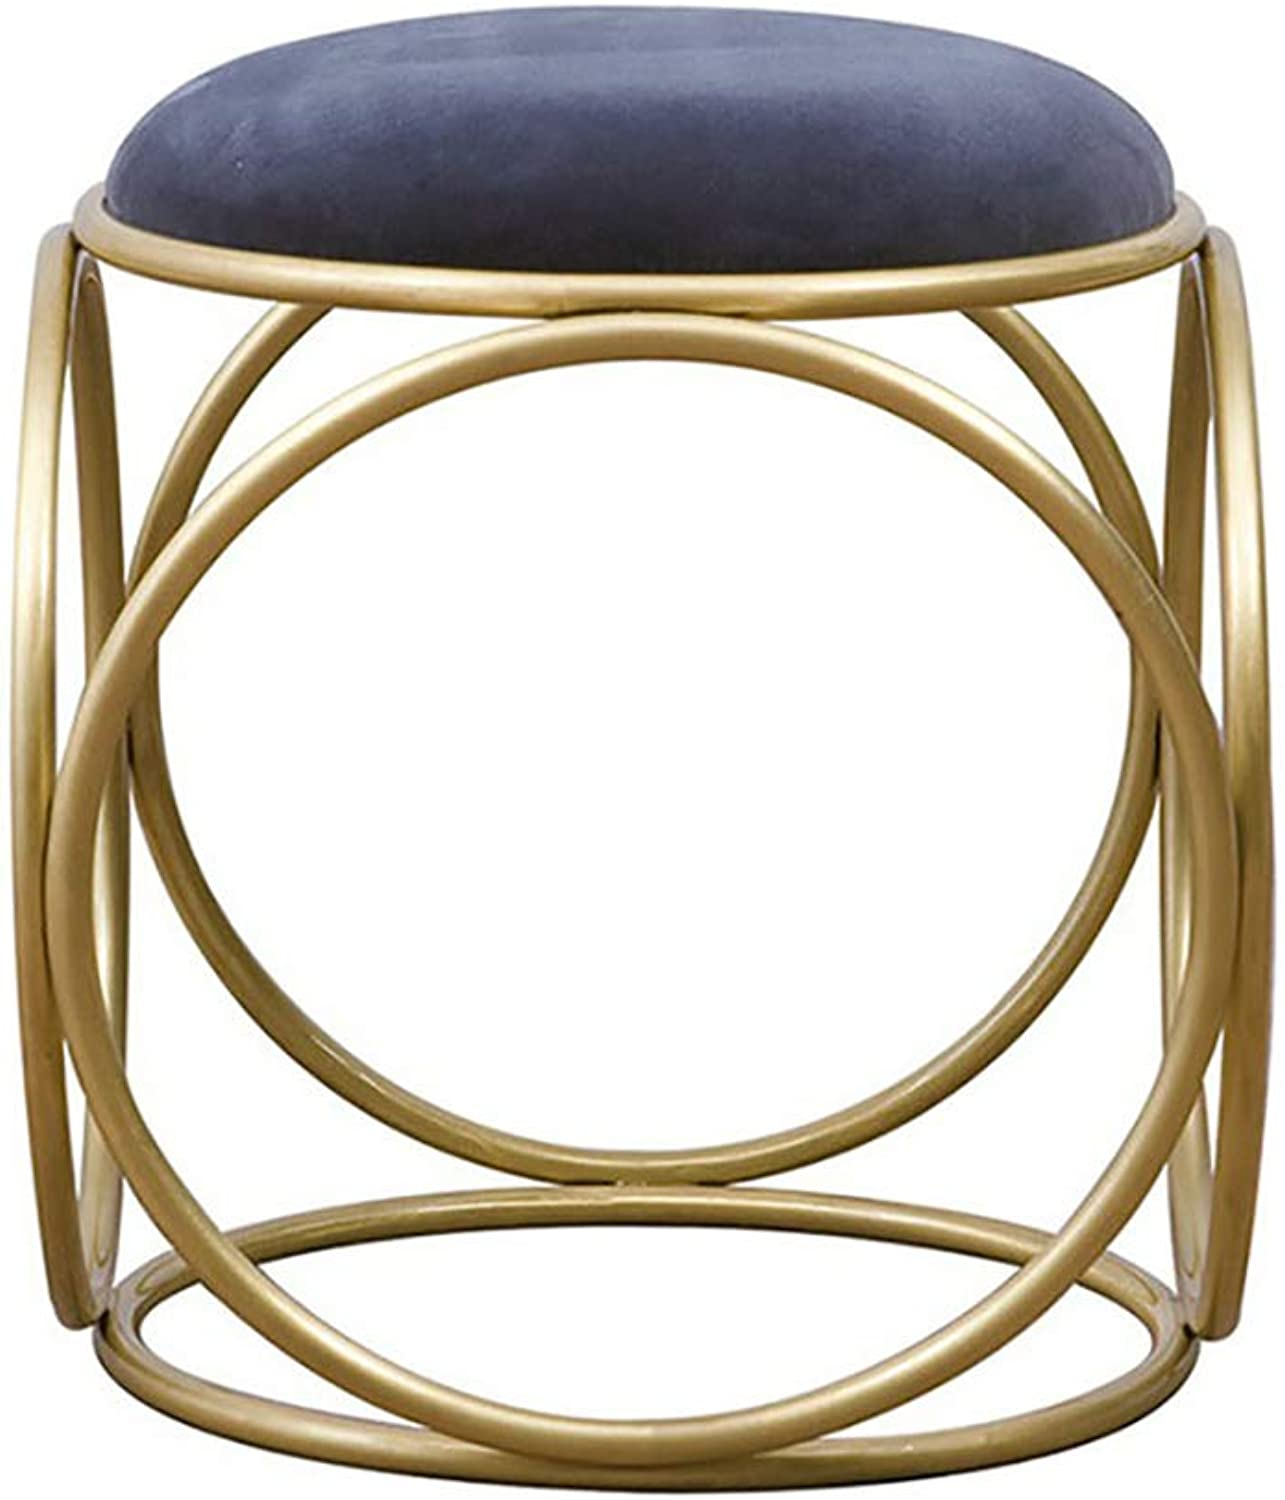 Dressing Stool Simple Bedroom Dressing Table Stool Living Room Round Stool Suede Makeup Chair Nail Chair